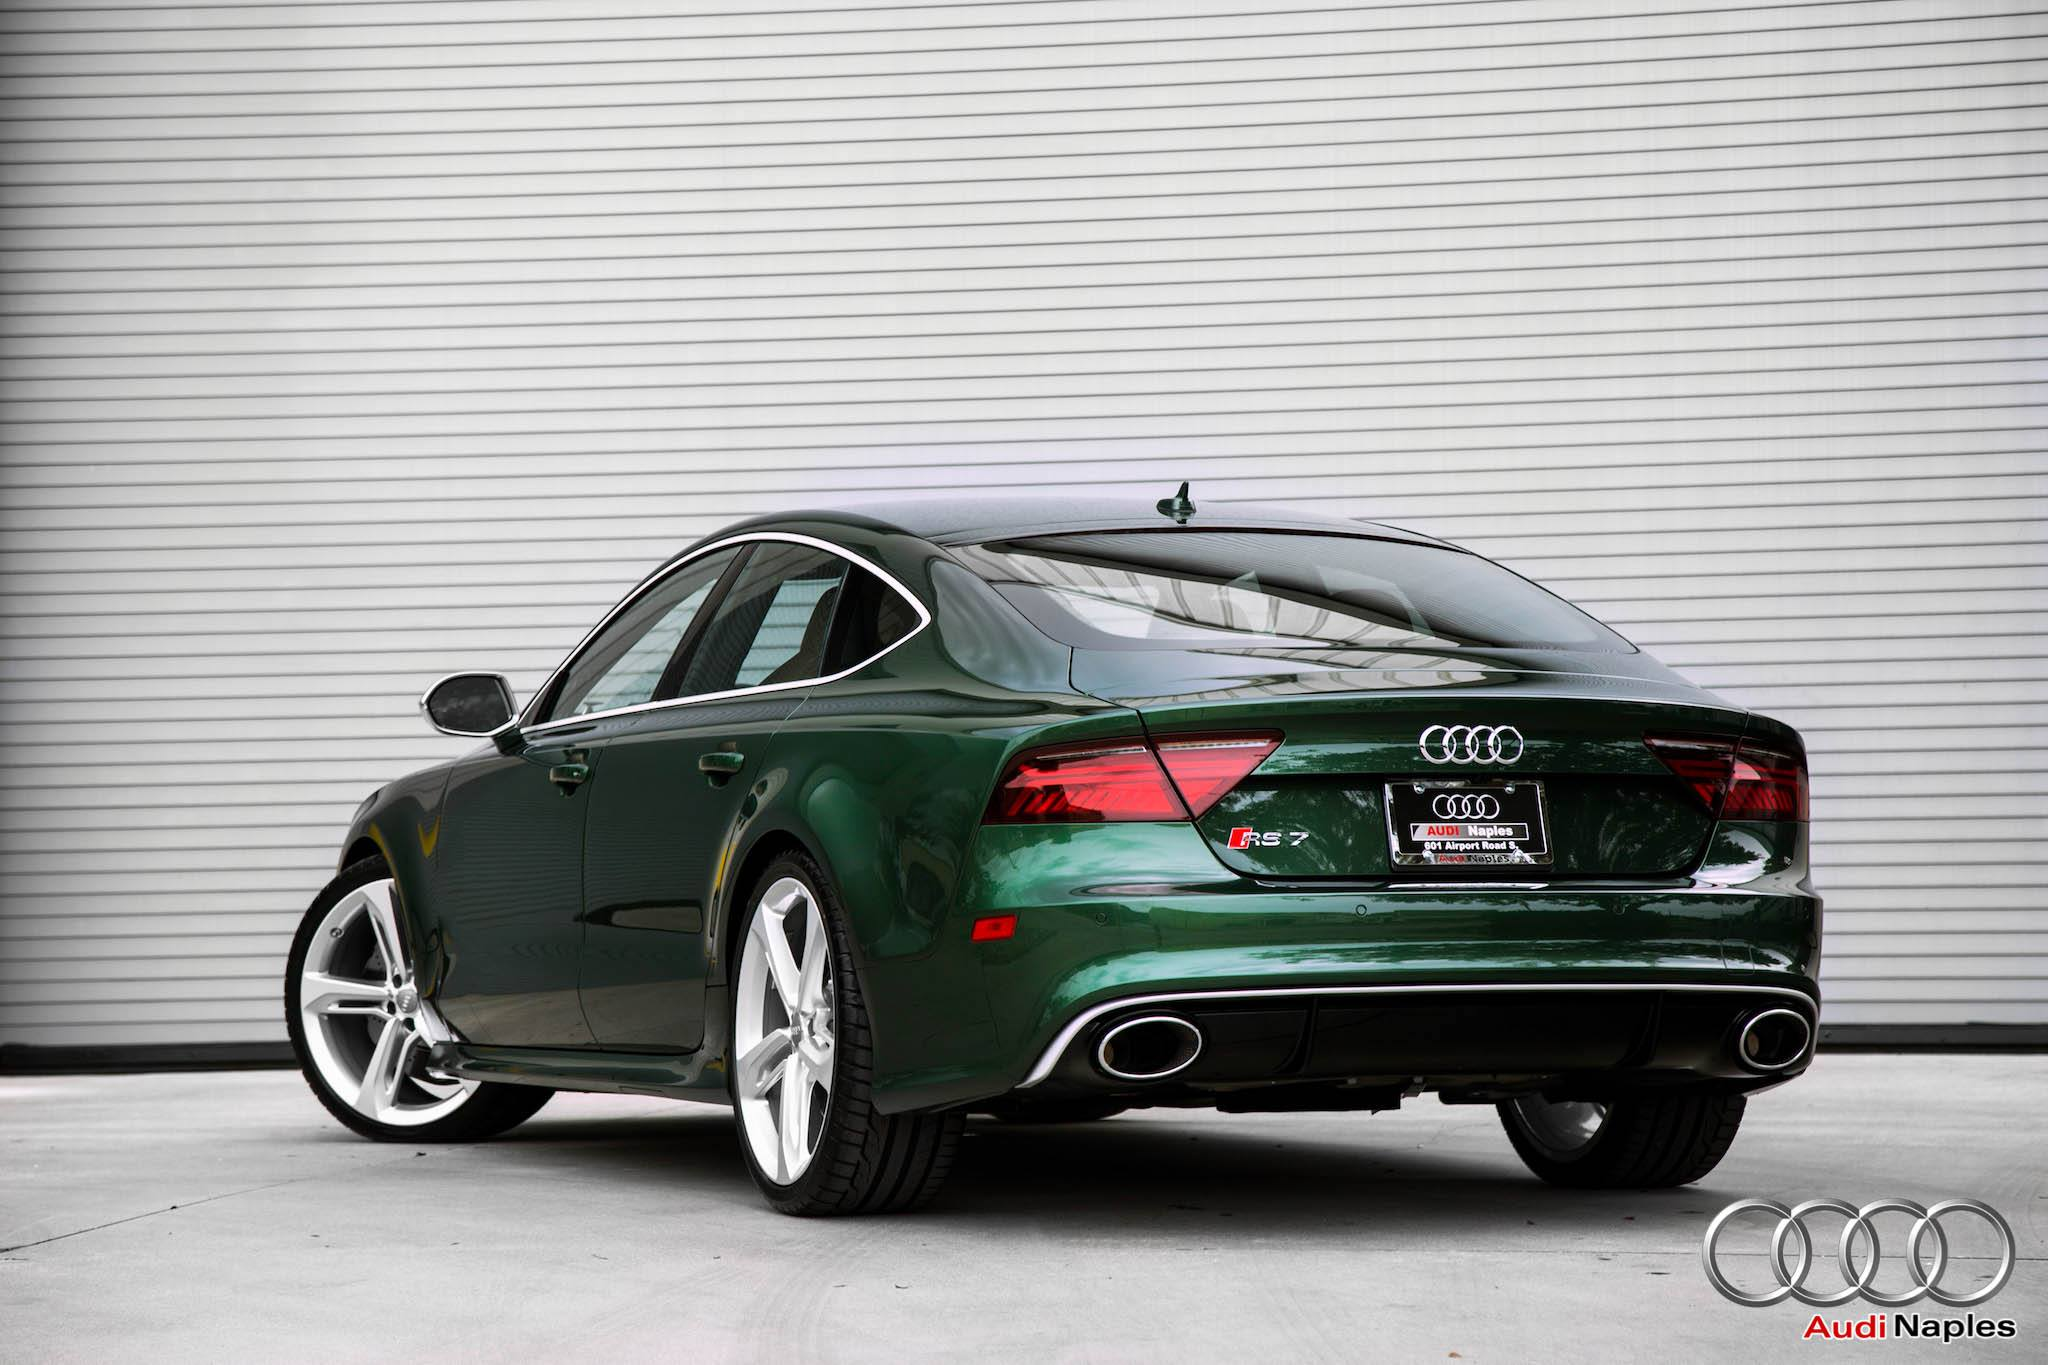 2016 Audi Rs7 In Verdant Green Looks Like A Bentley